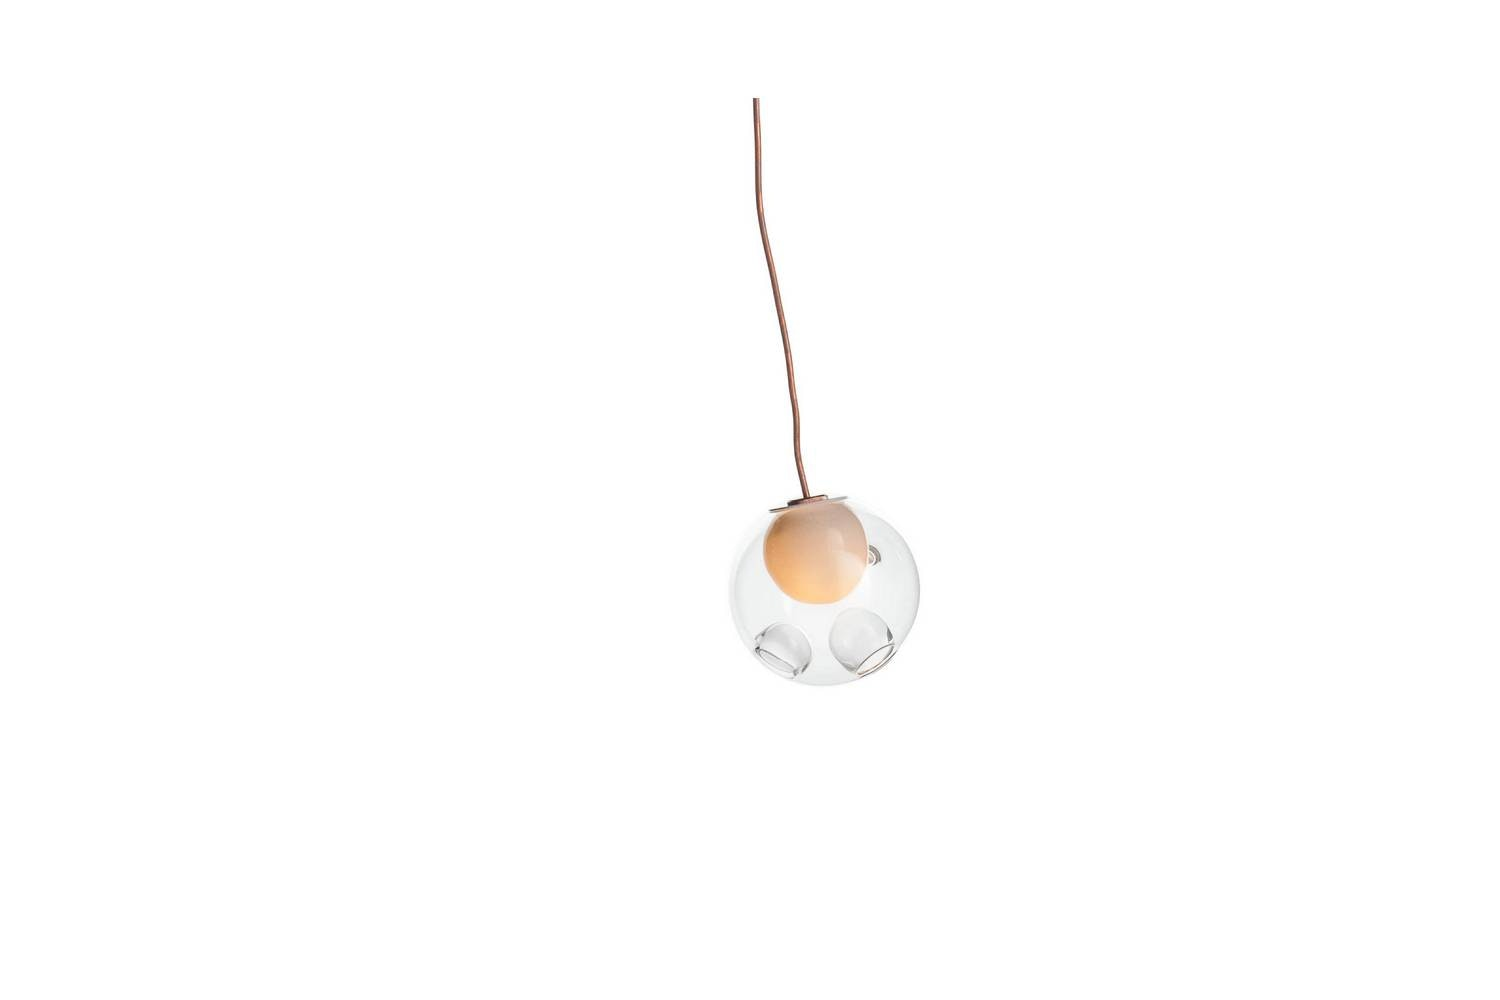 28.1 Copper Suspension Lamp by Omer Arbel for Bocci